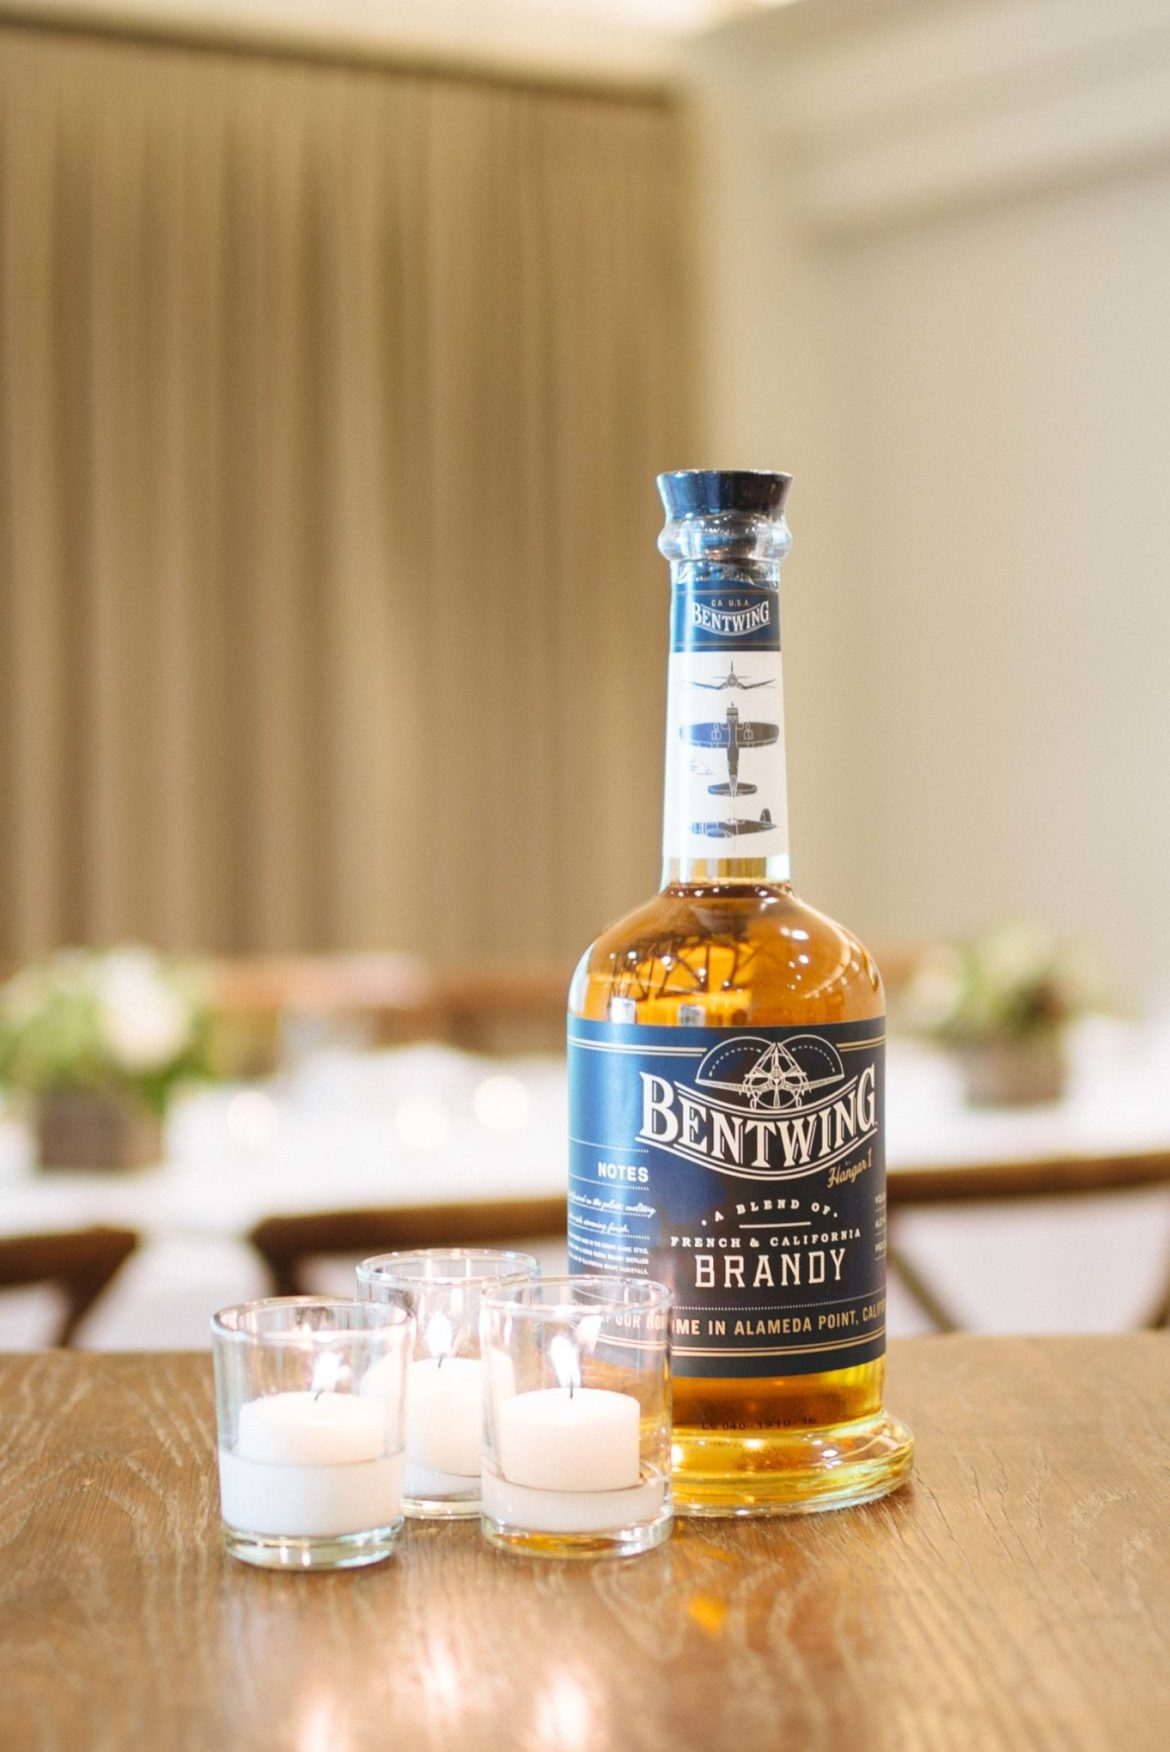 The Taste Edit attends the Hangar 1 Distillery launch party for Bentwing Brandy in Napa Valley at Meadowood dinner table